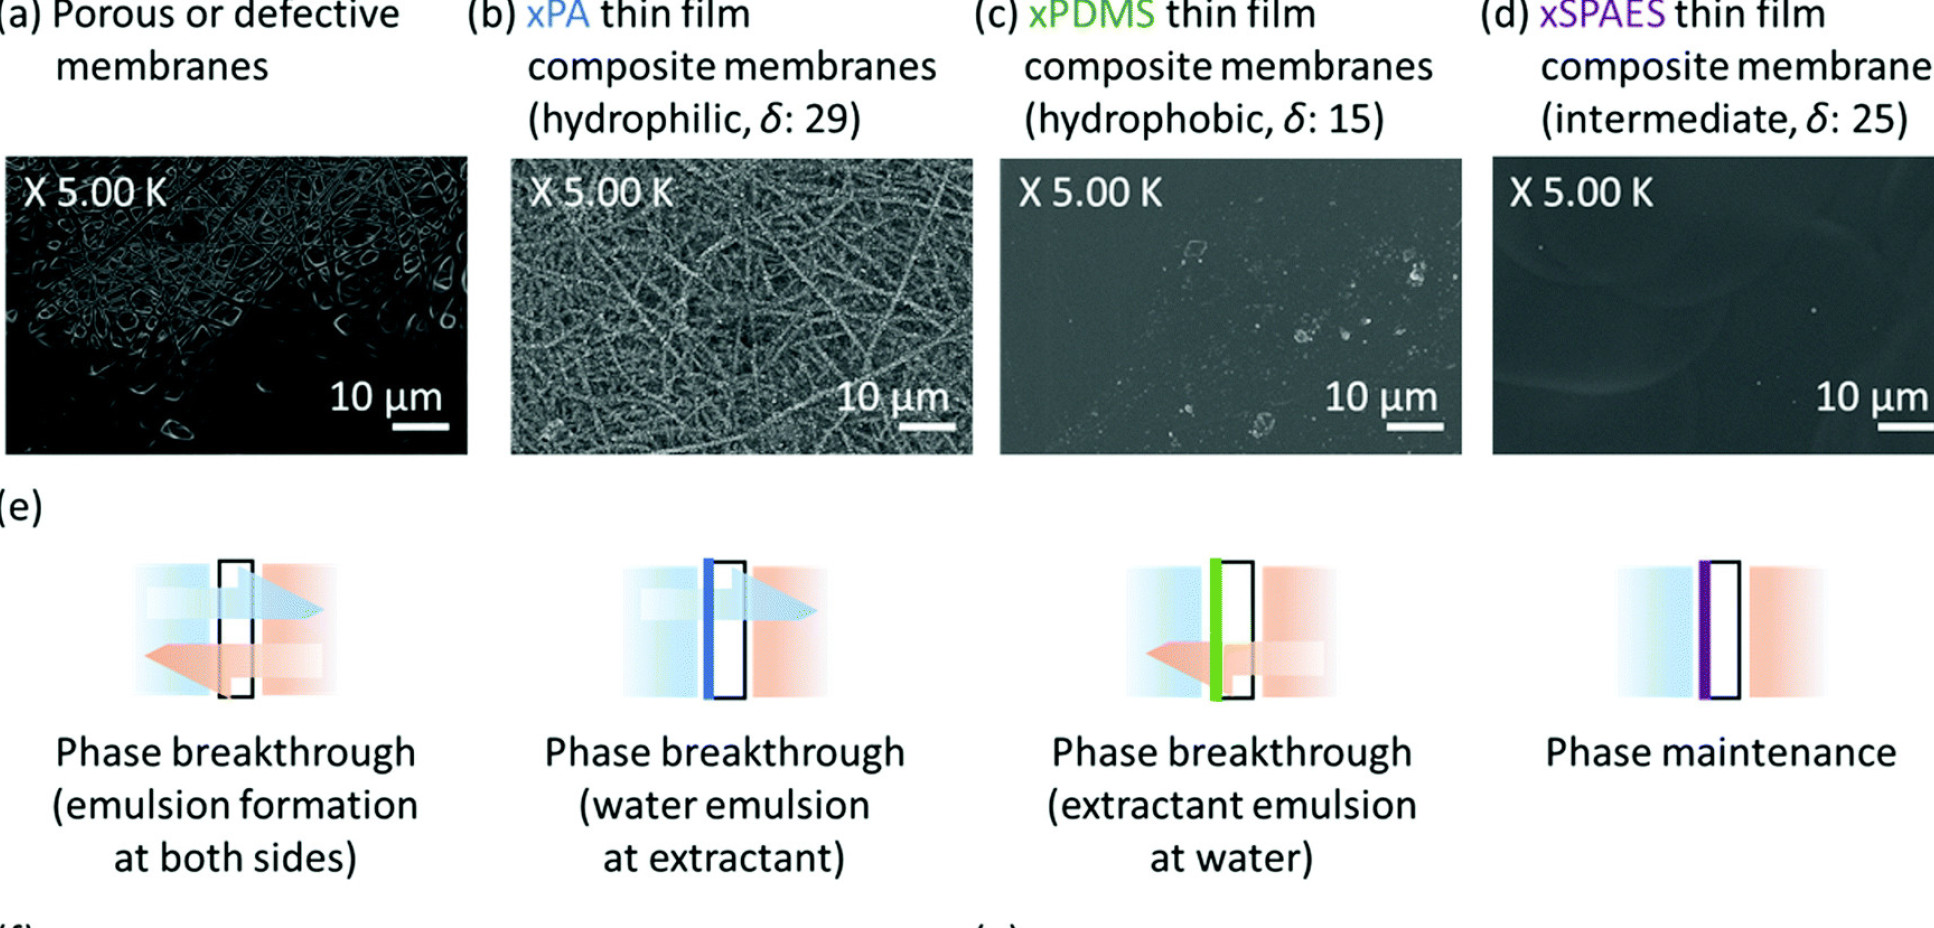 Image showing the different types of biofuel membrane